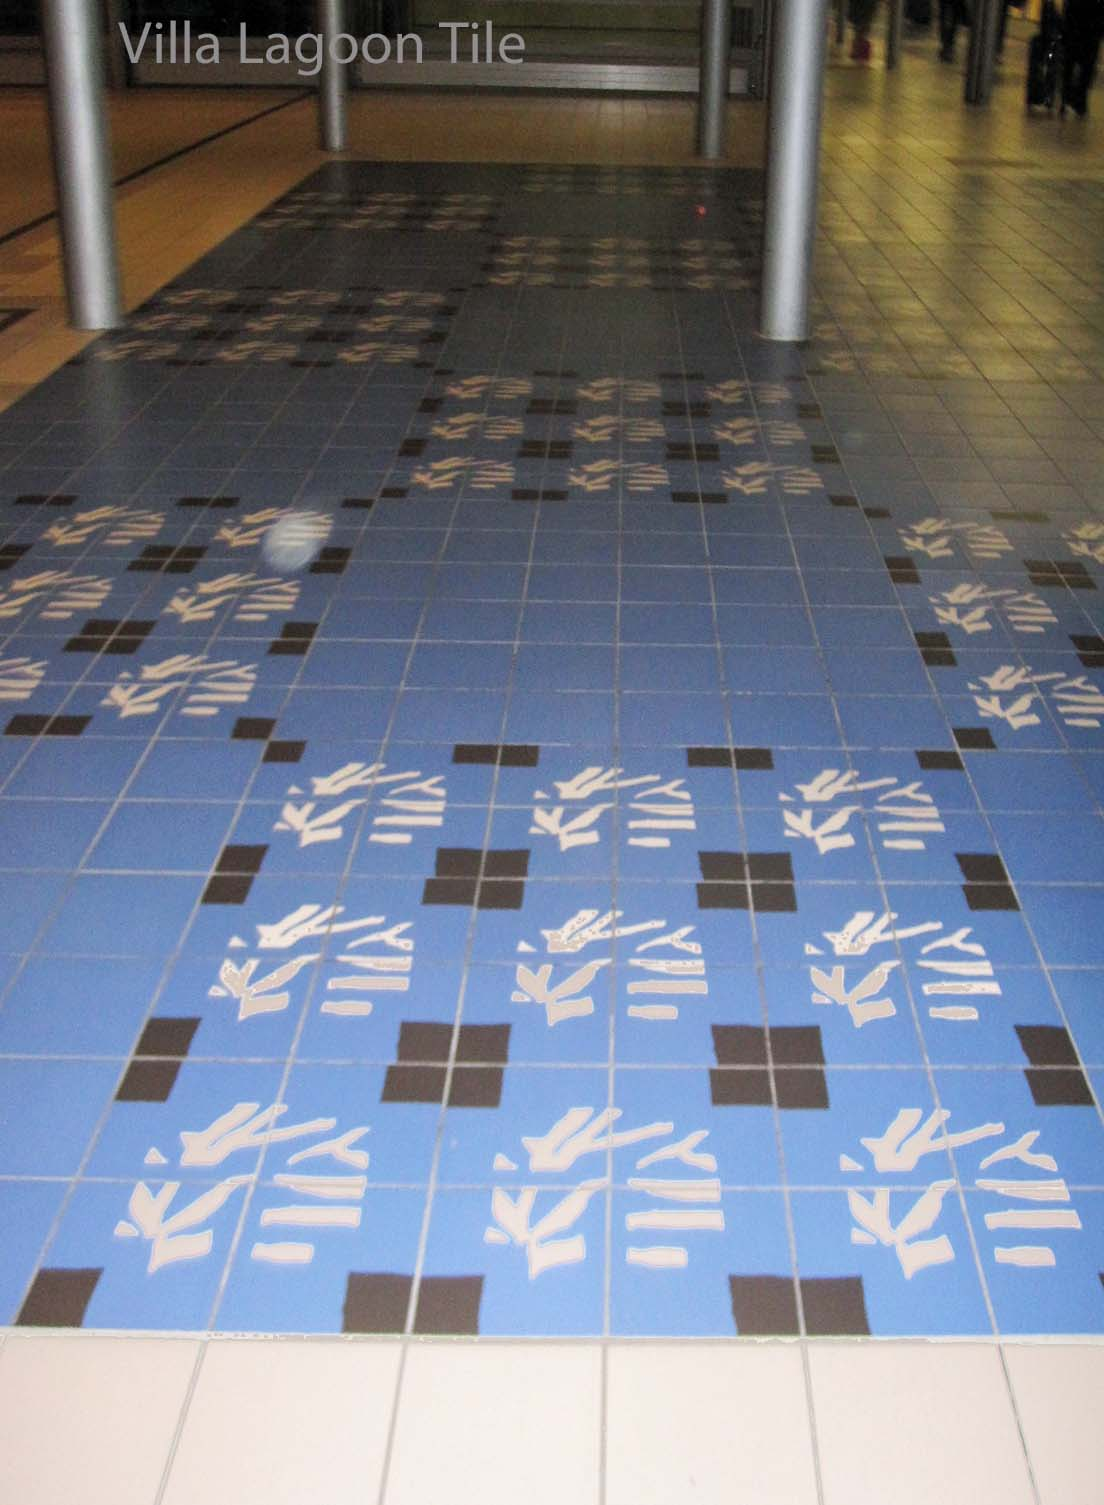 2012-airport-paris-cement-tile-floor-VLT